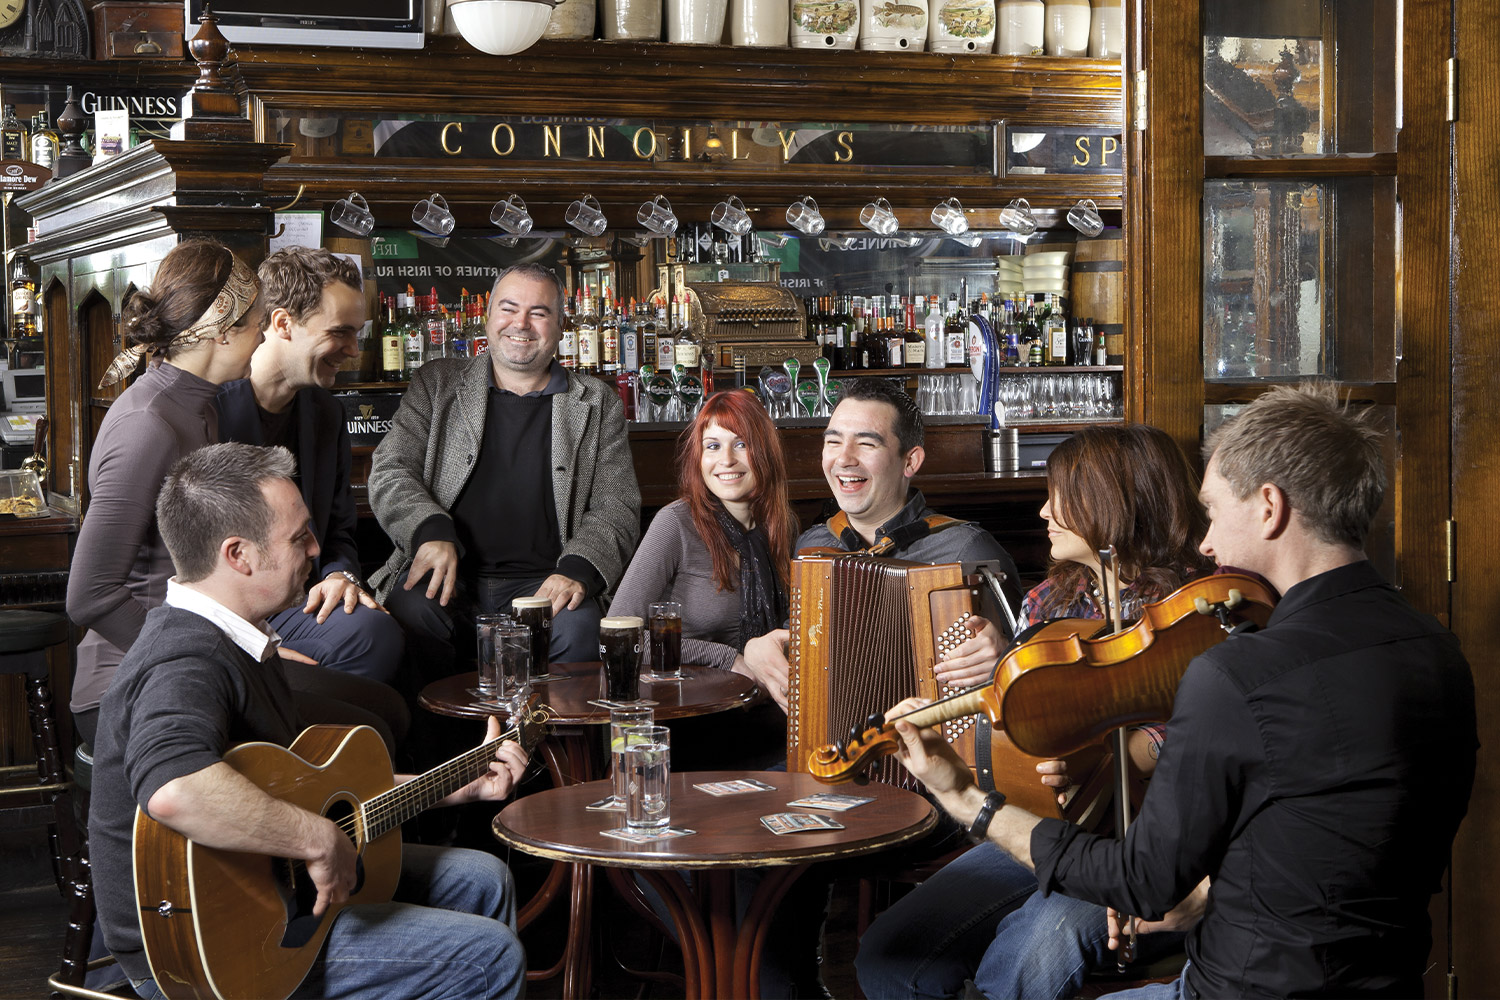 Irish Band in Connellys Bar